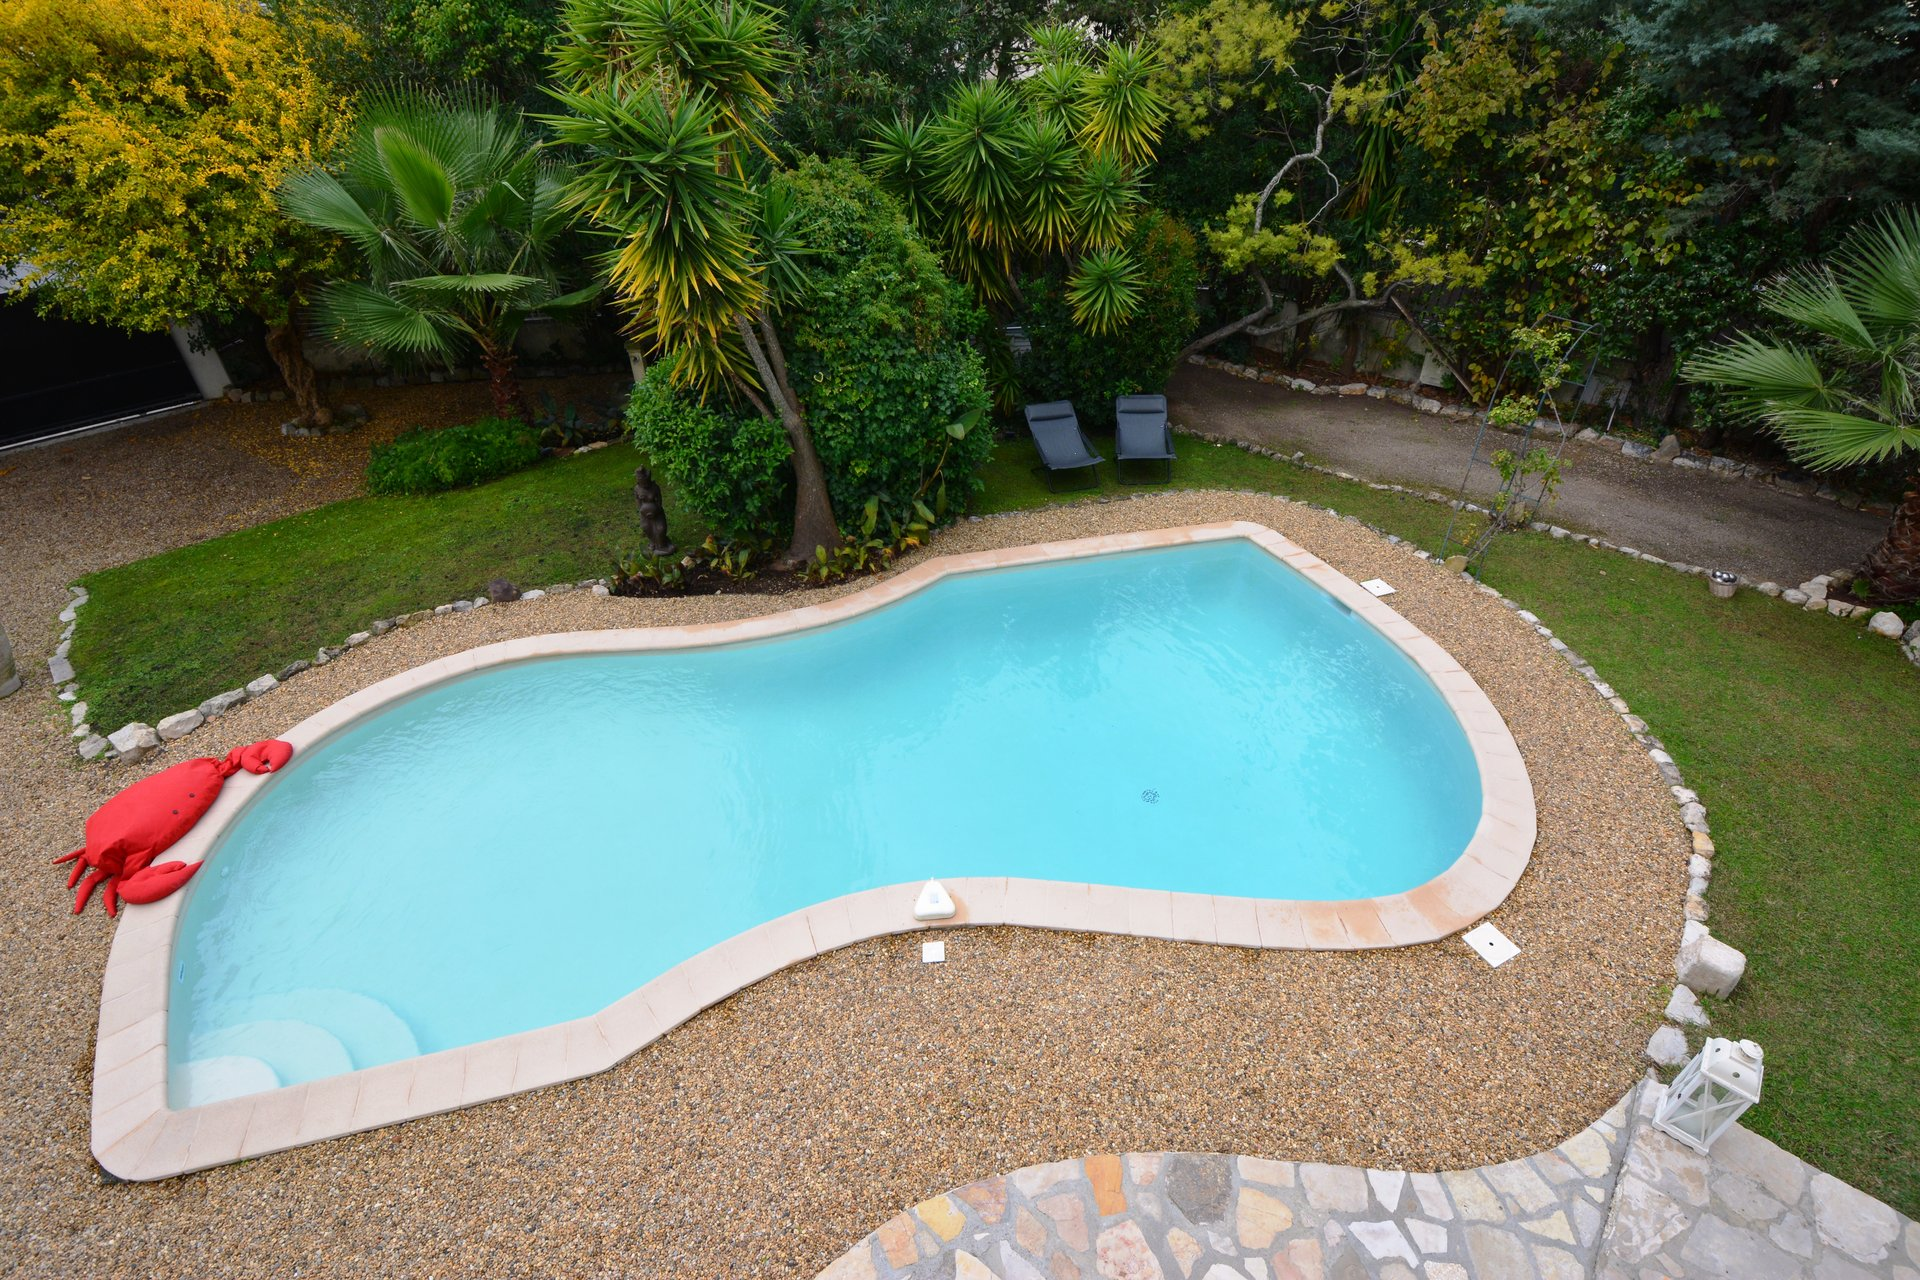 Villa within walking distance of the beaches - Juan les Pins Badine